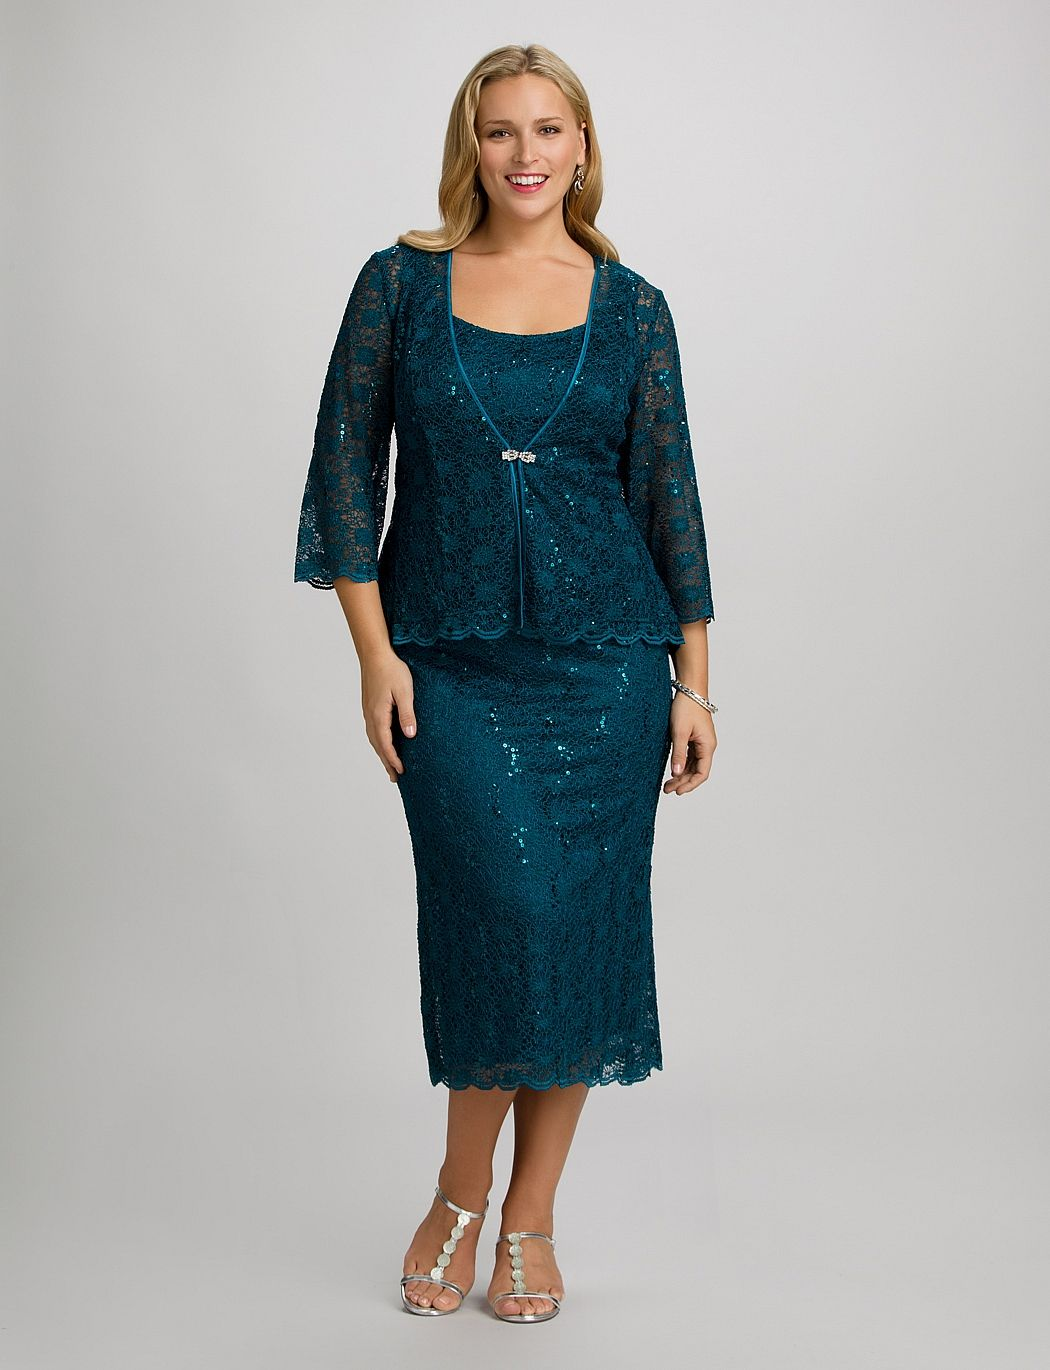 Dress barn plus size dresses special occasion